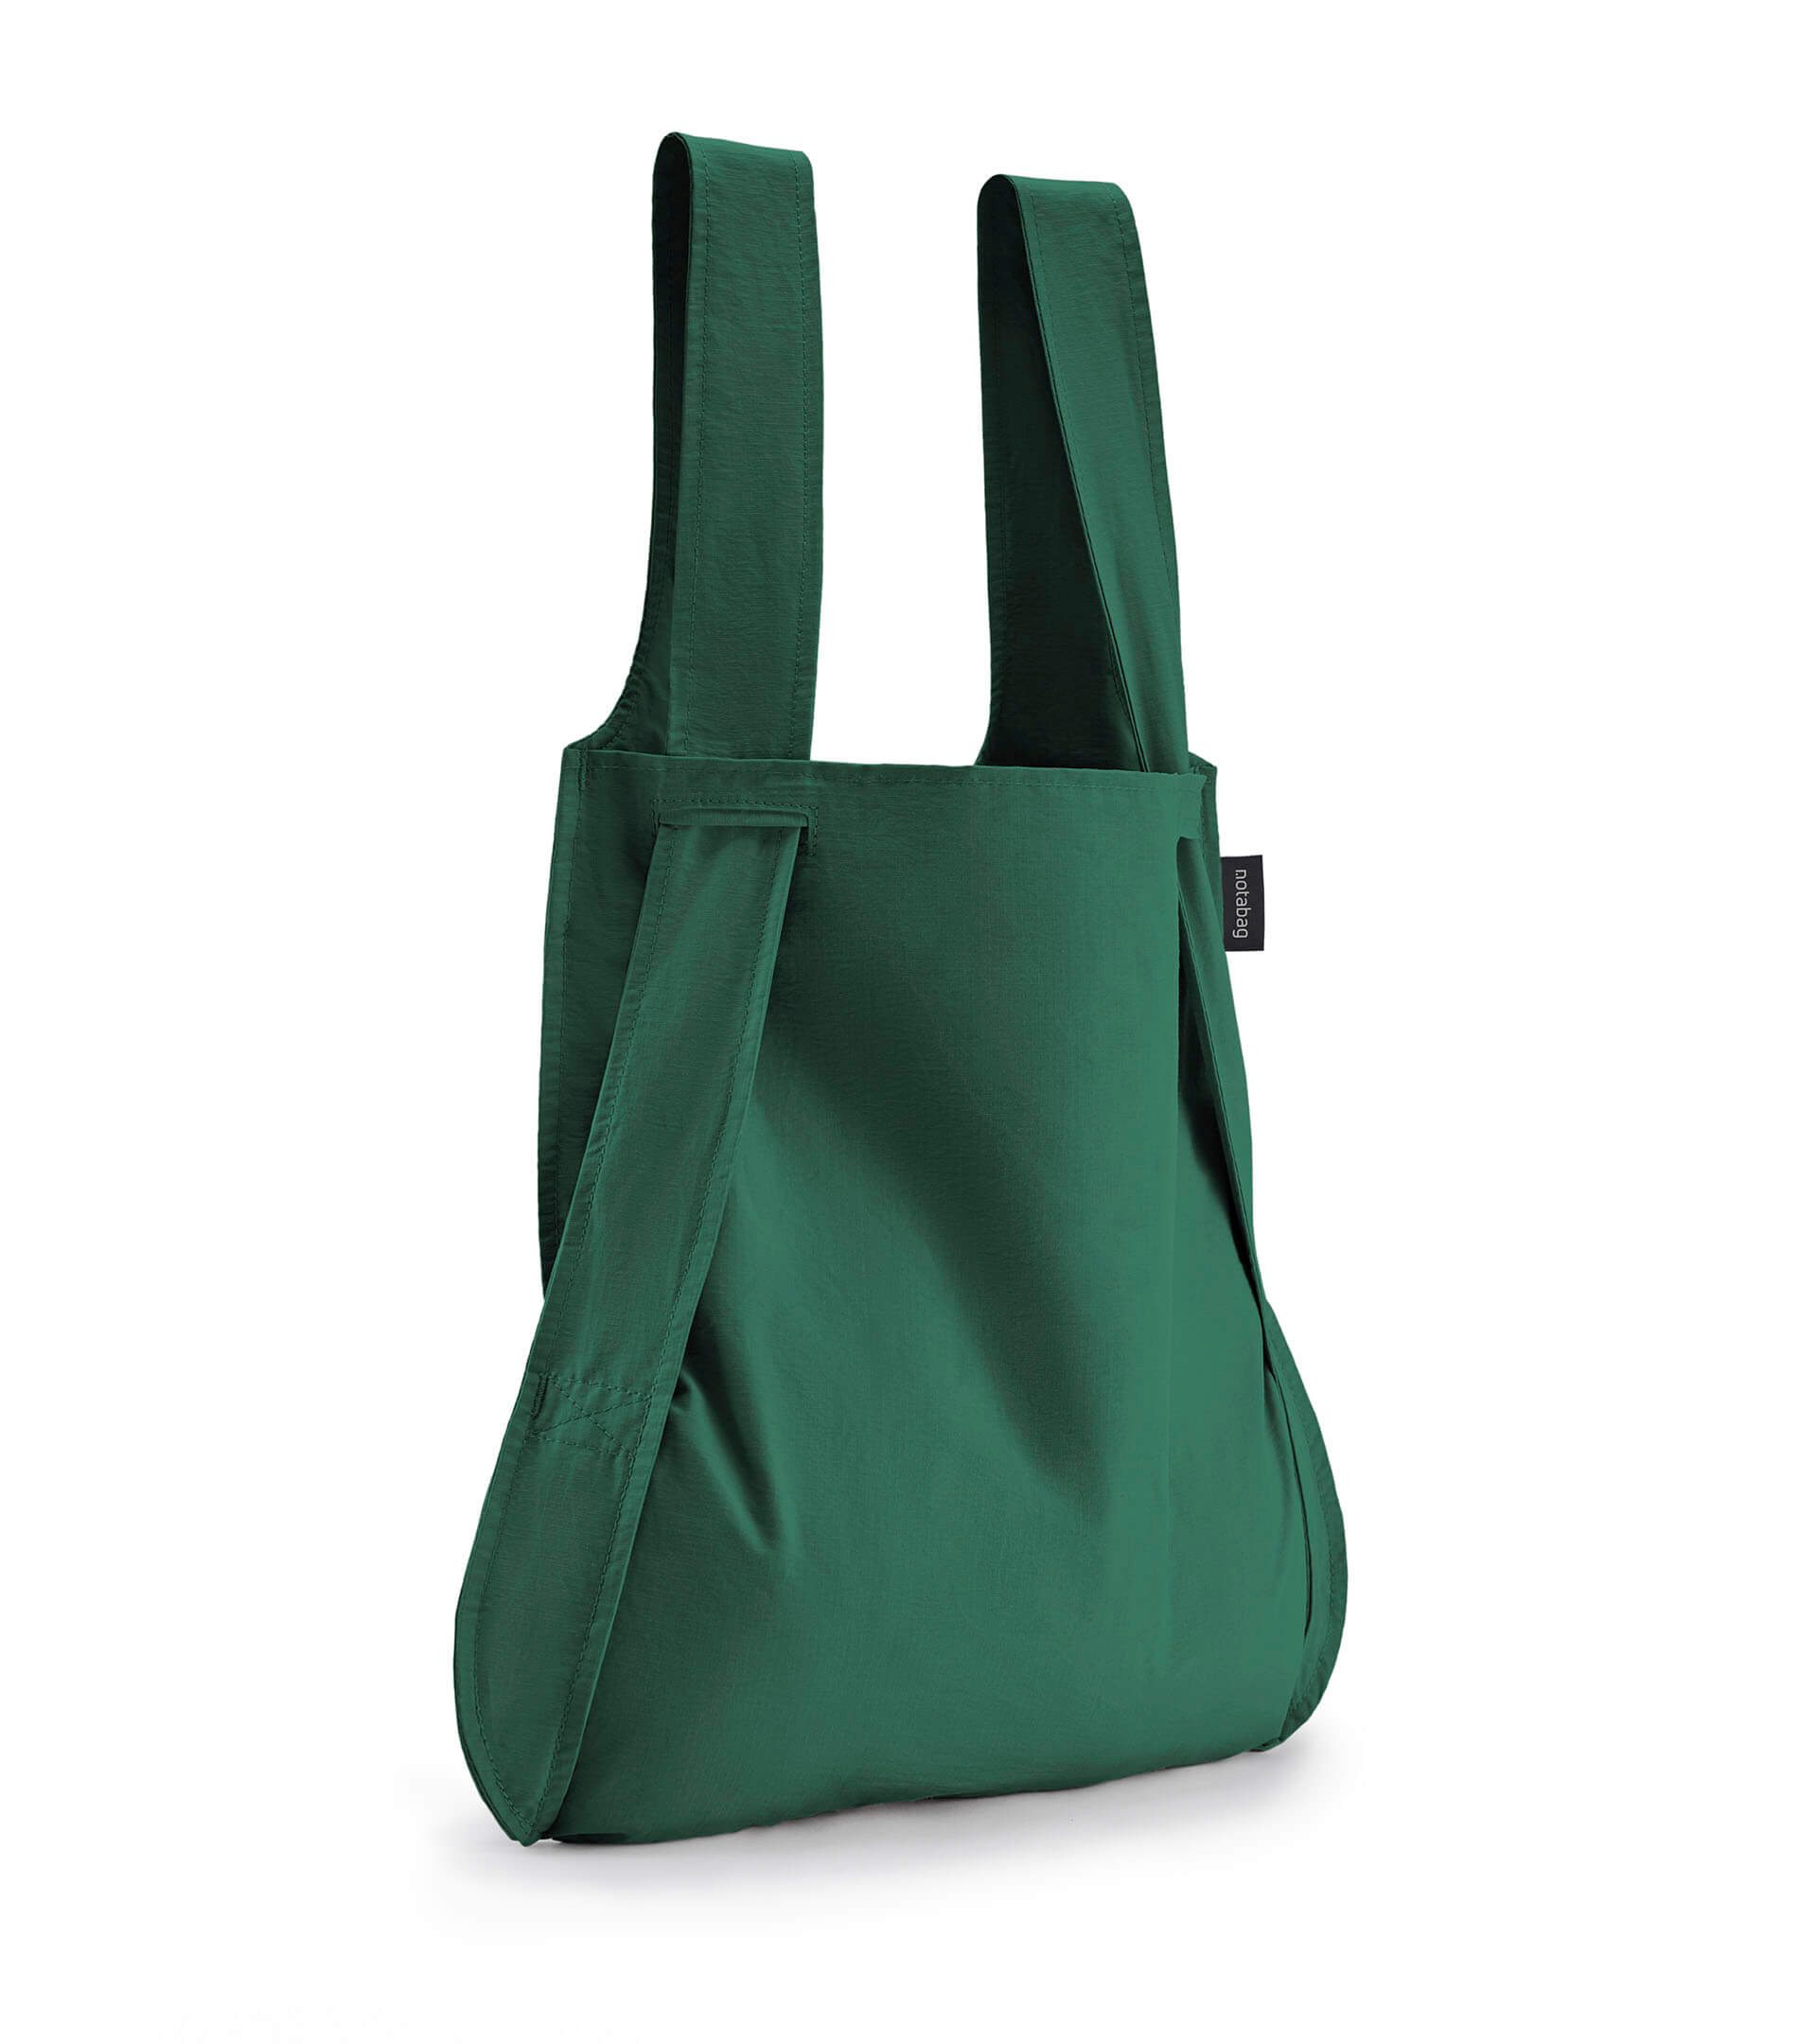 Notabag Rugzak / Shopper Forest Green